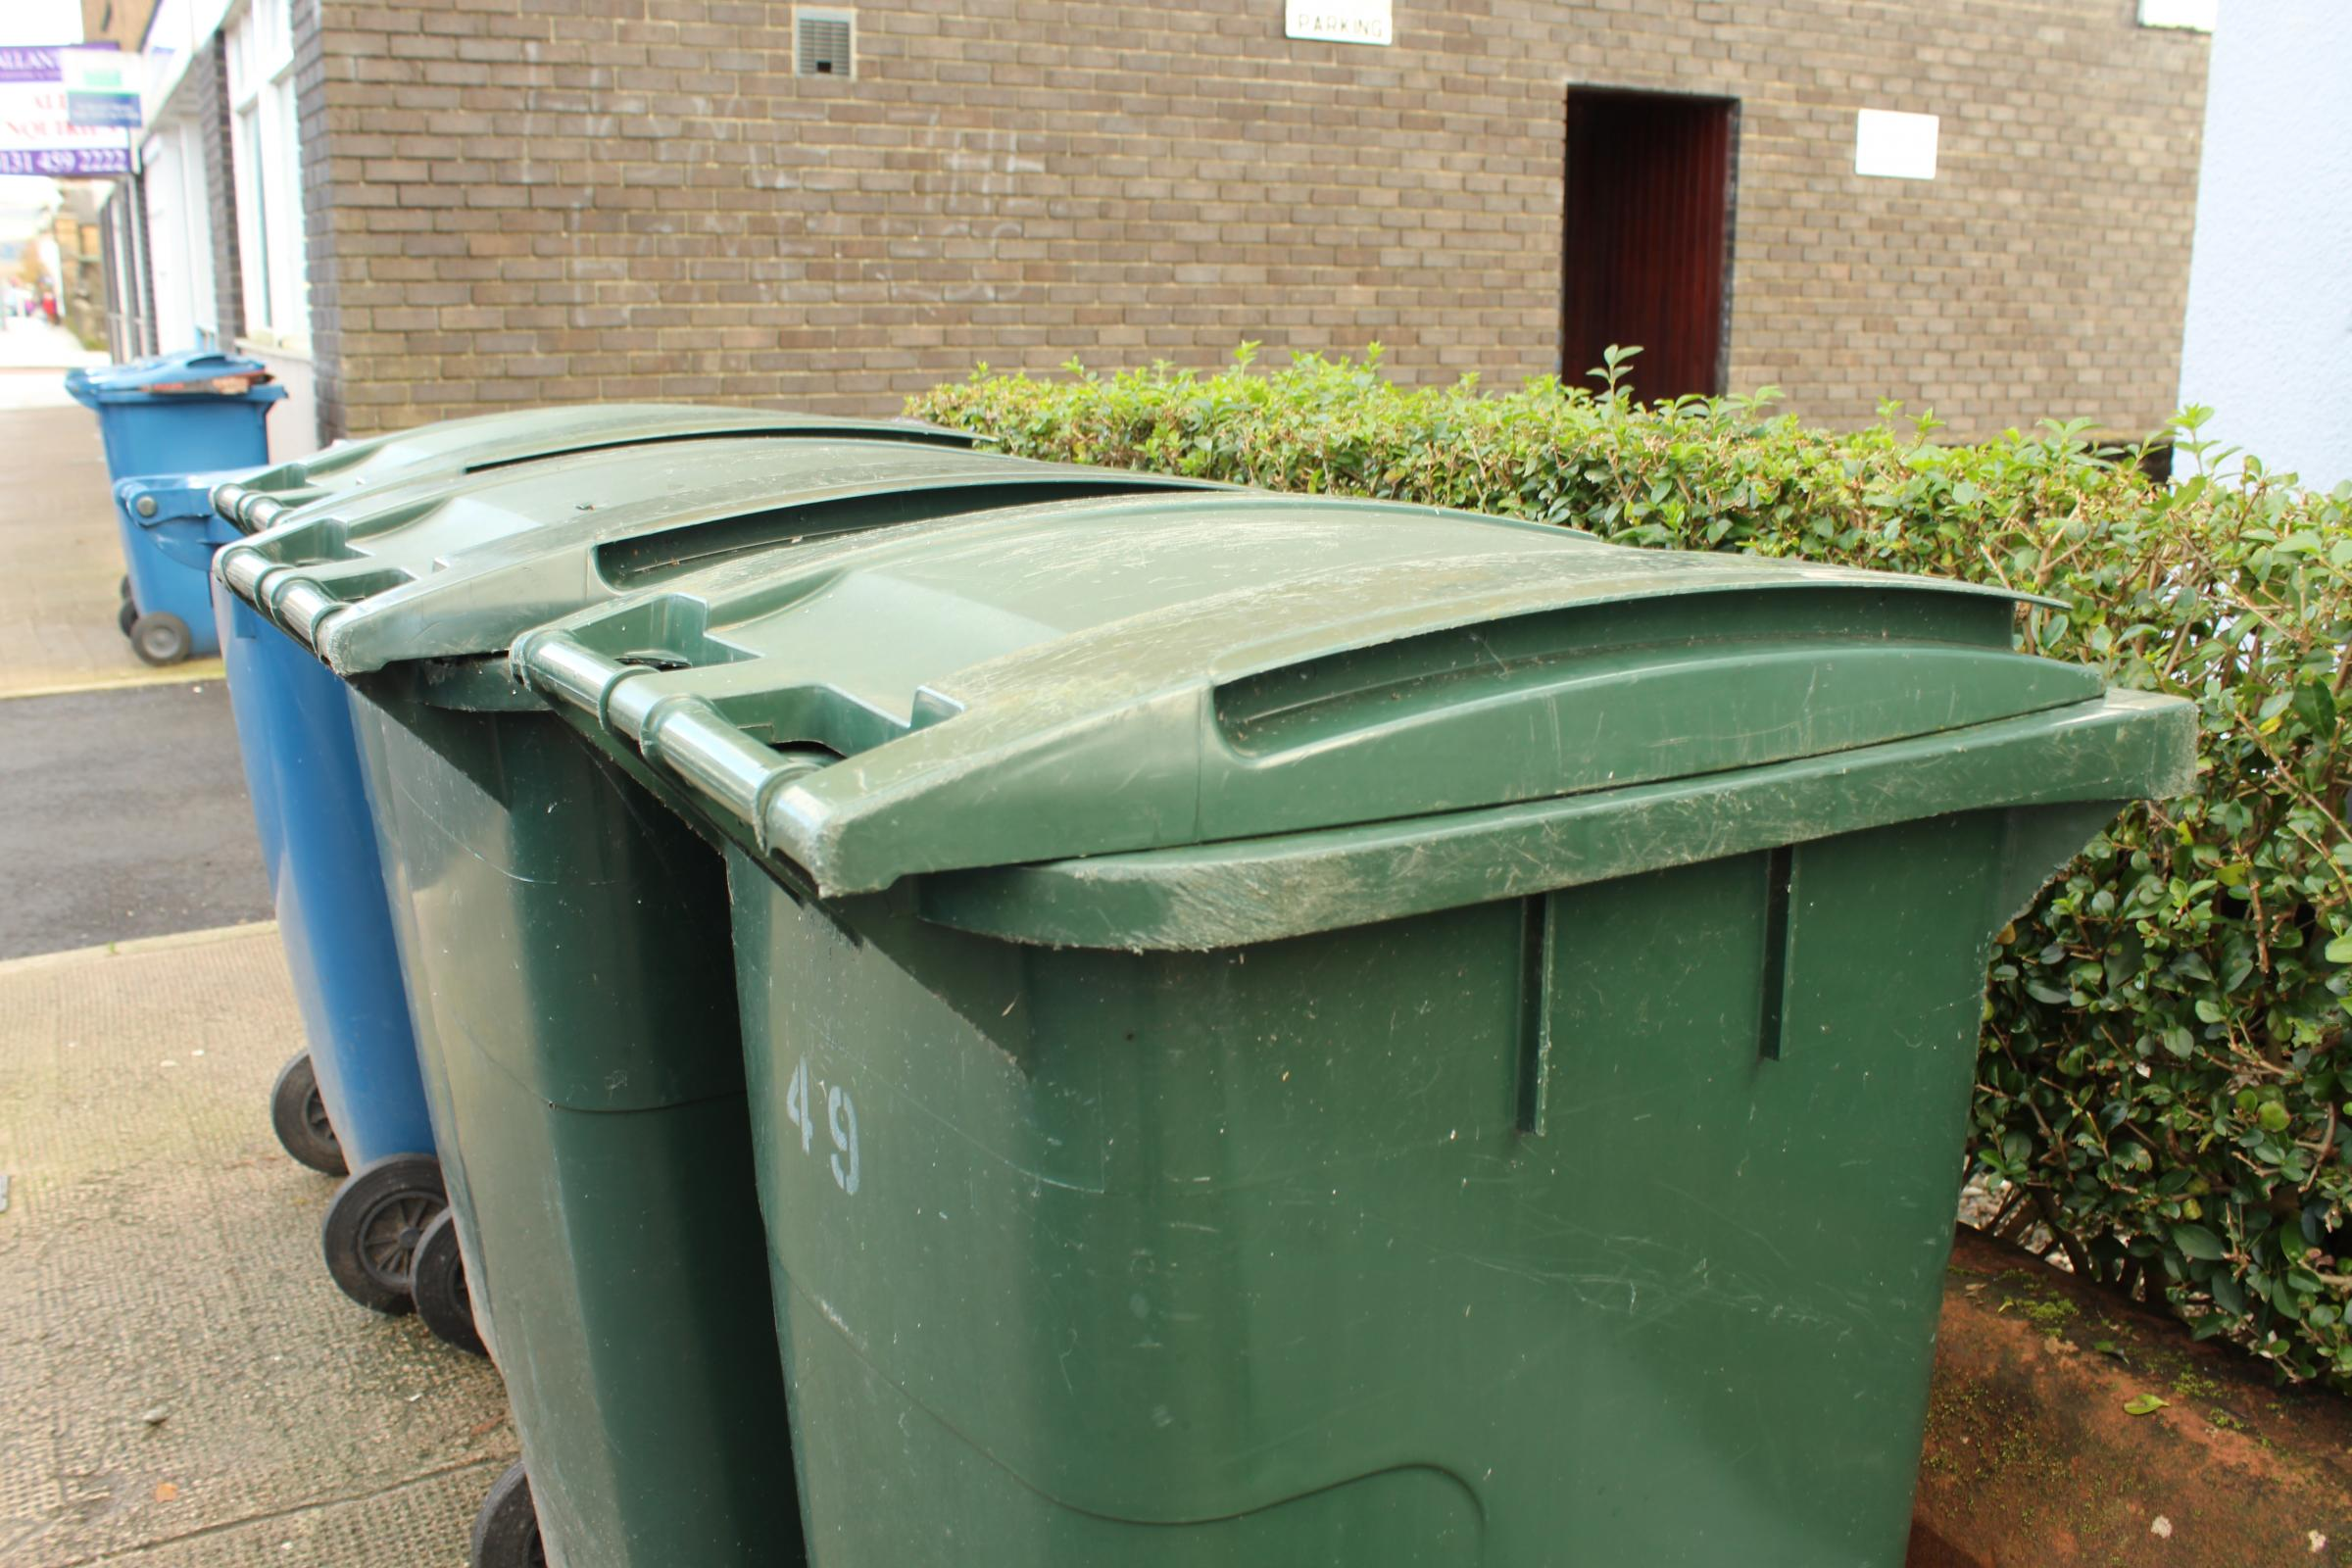 Complaints over bin collections are rising in West Dunbartonshire